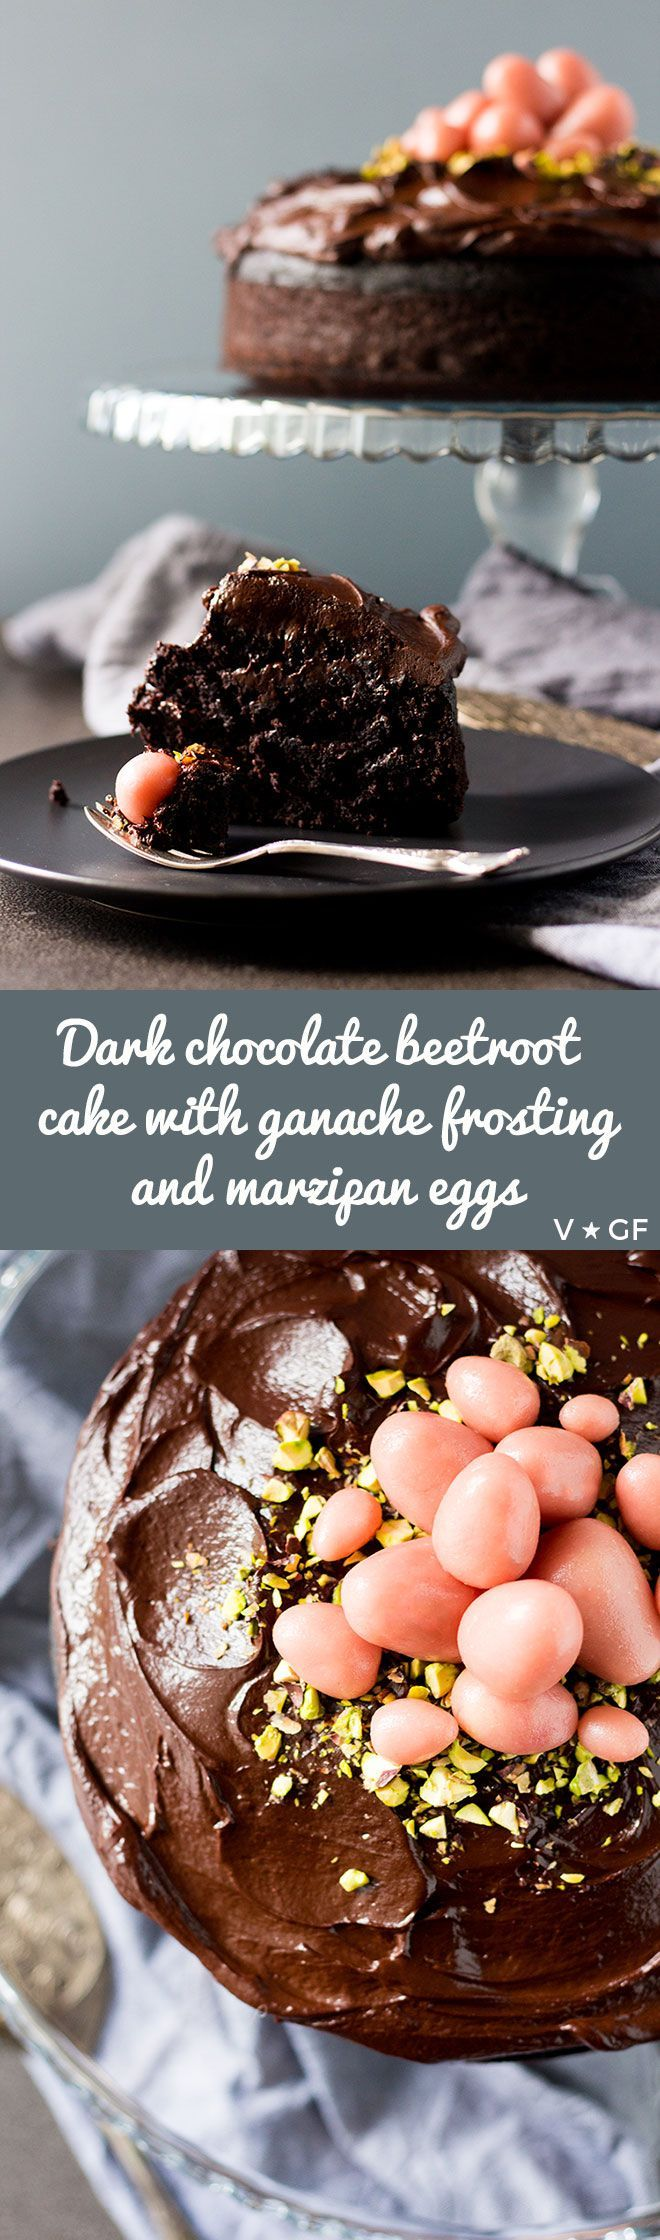 A vegan and gluten free dark chocolate beetroot cake with chocolate ganache frosting and marzipan eggs, perfect for Easter or any celebration. via @quitegoodfood